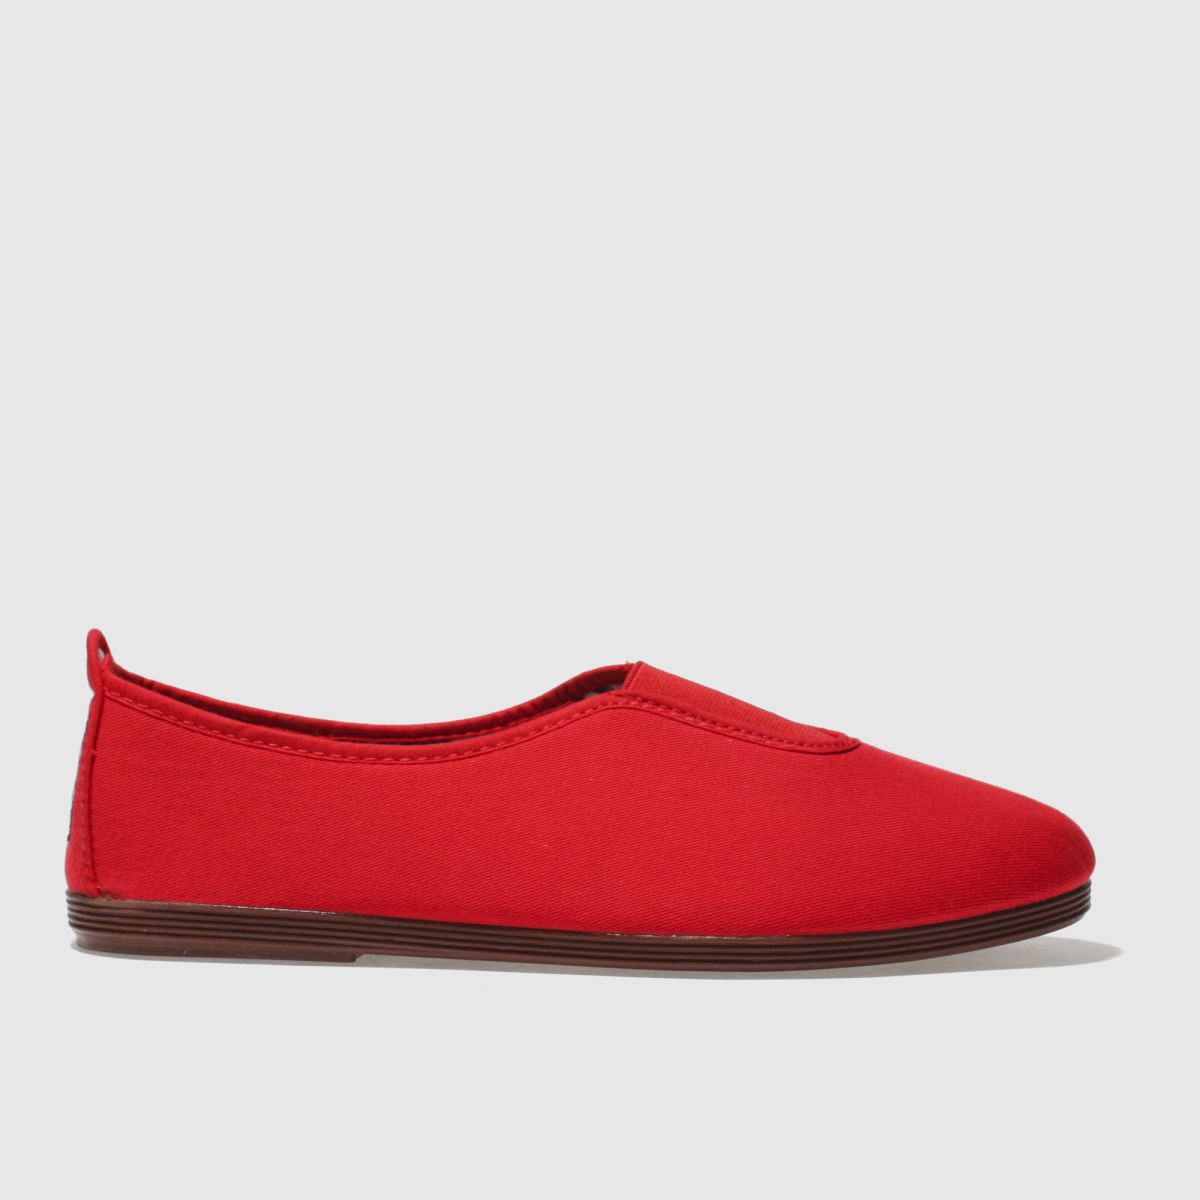 Flossy Flossy Red Califa Flat Shoes